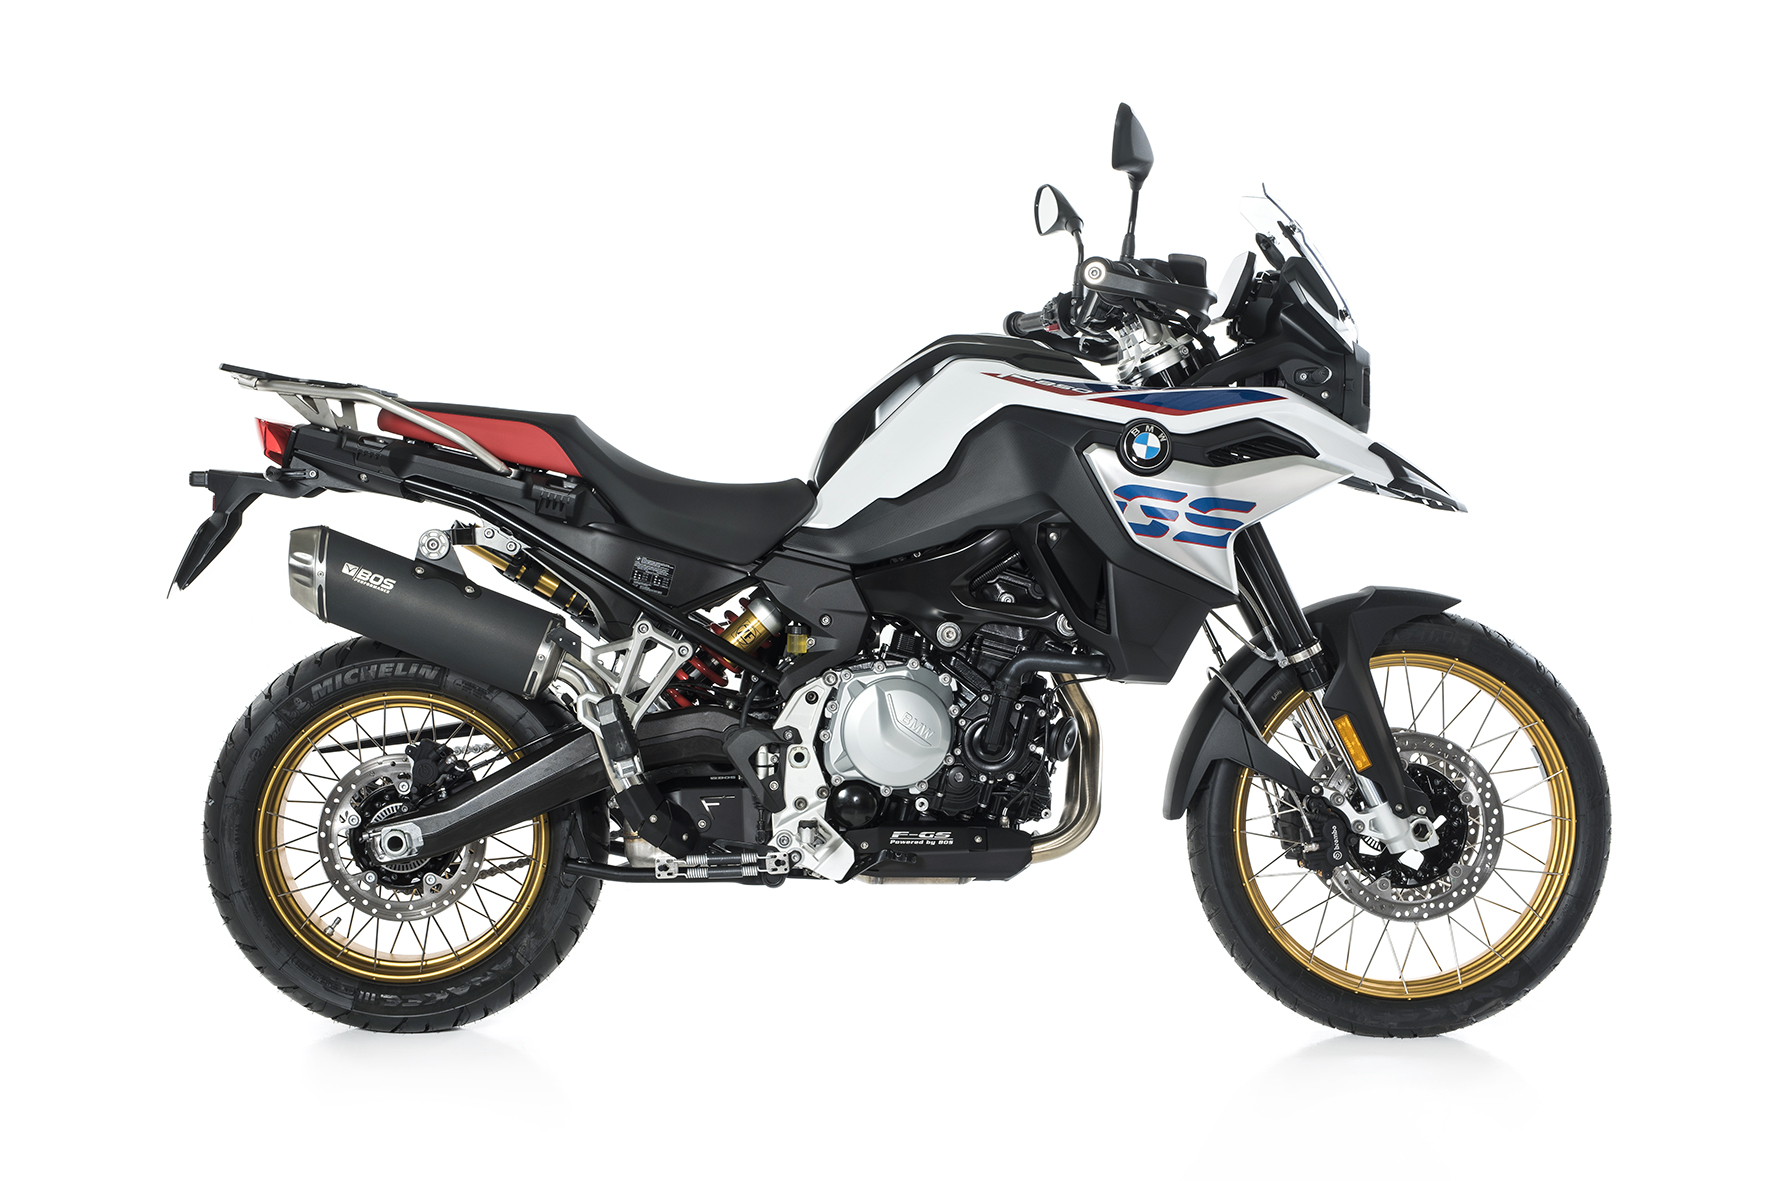 F 750 GS / F 850 GS Dune Fox Slip-on Euro 4 10